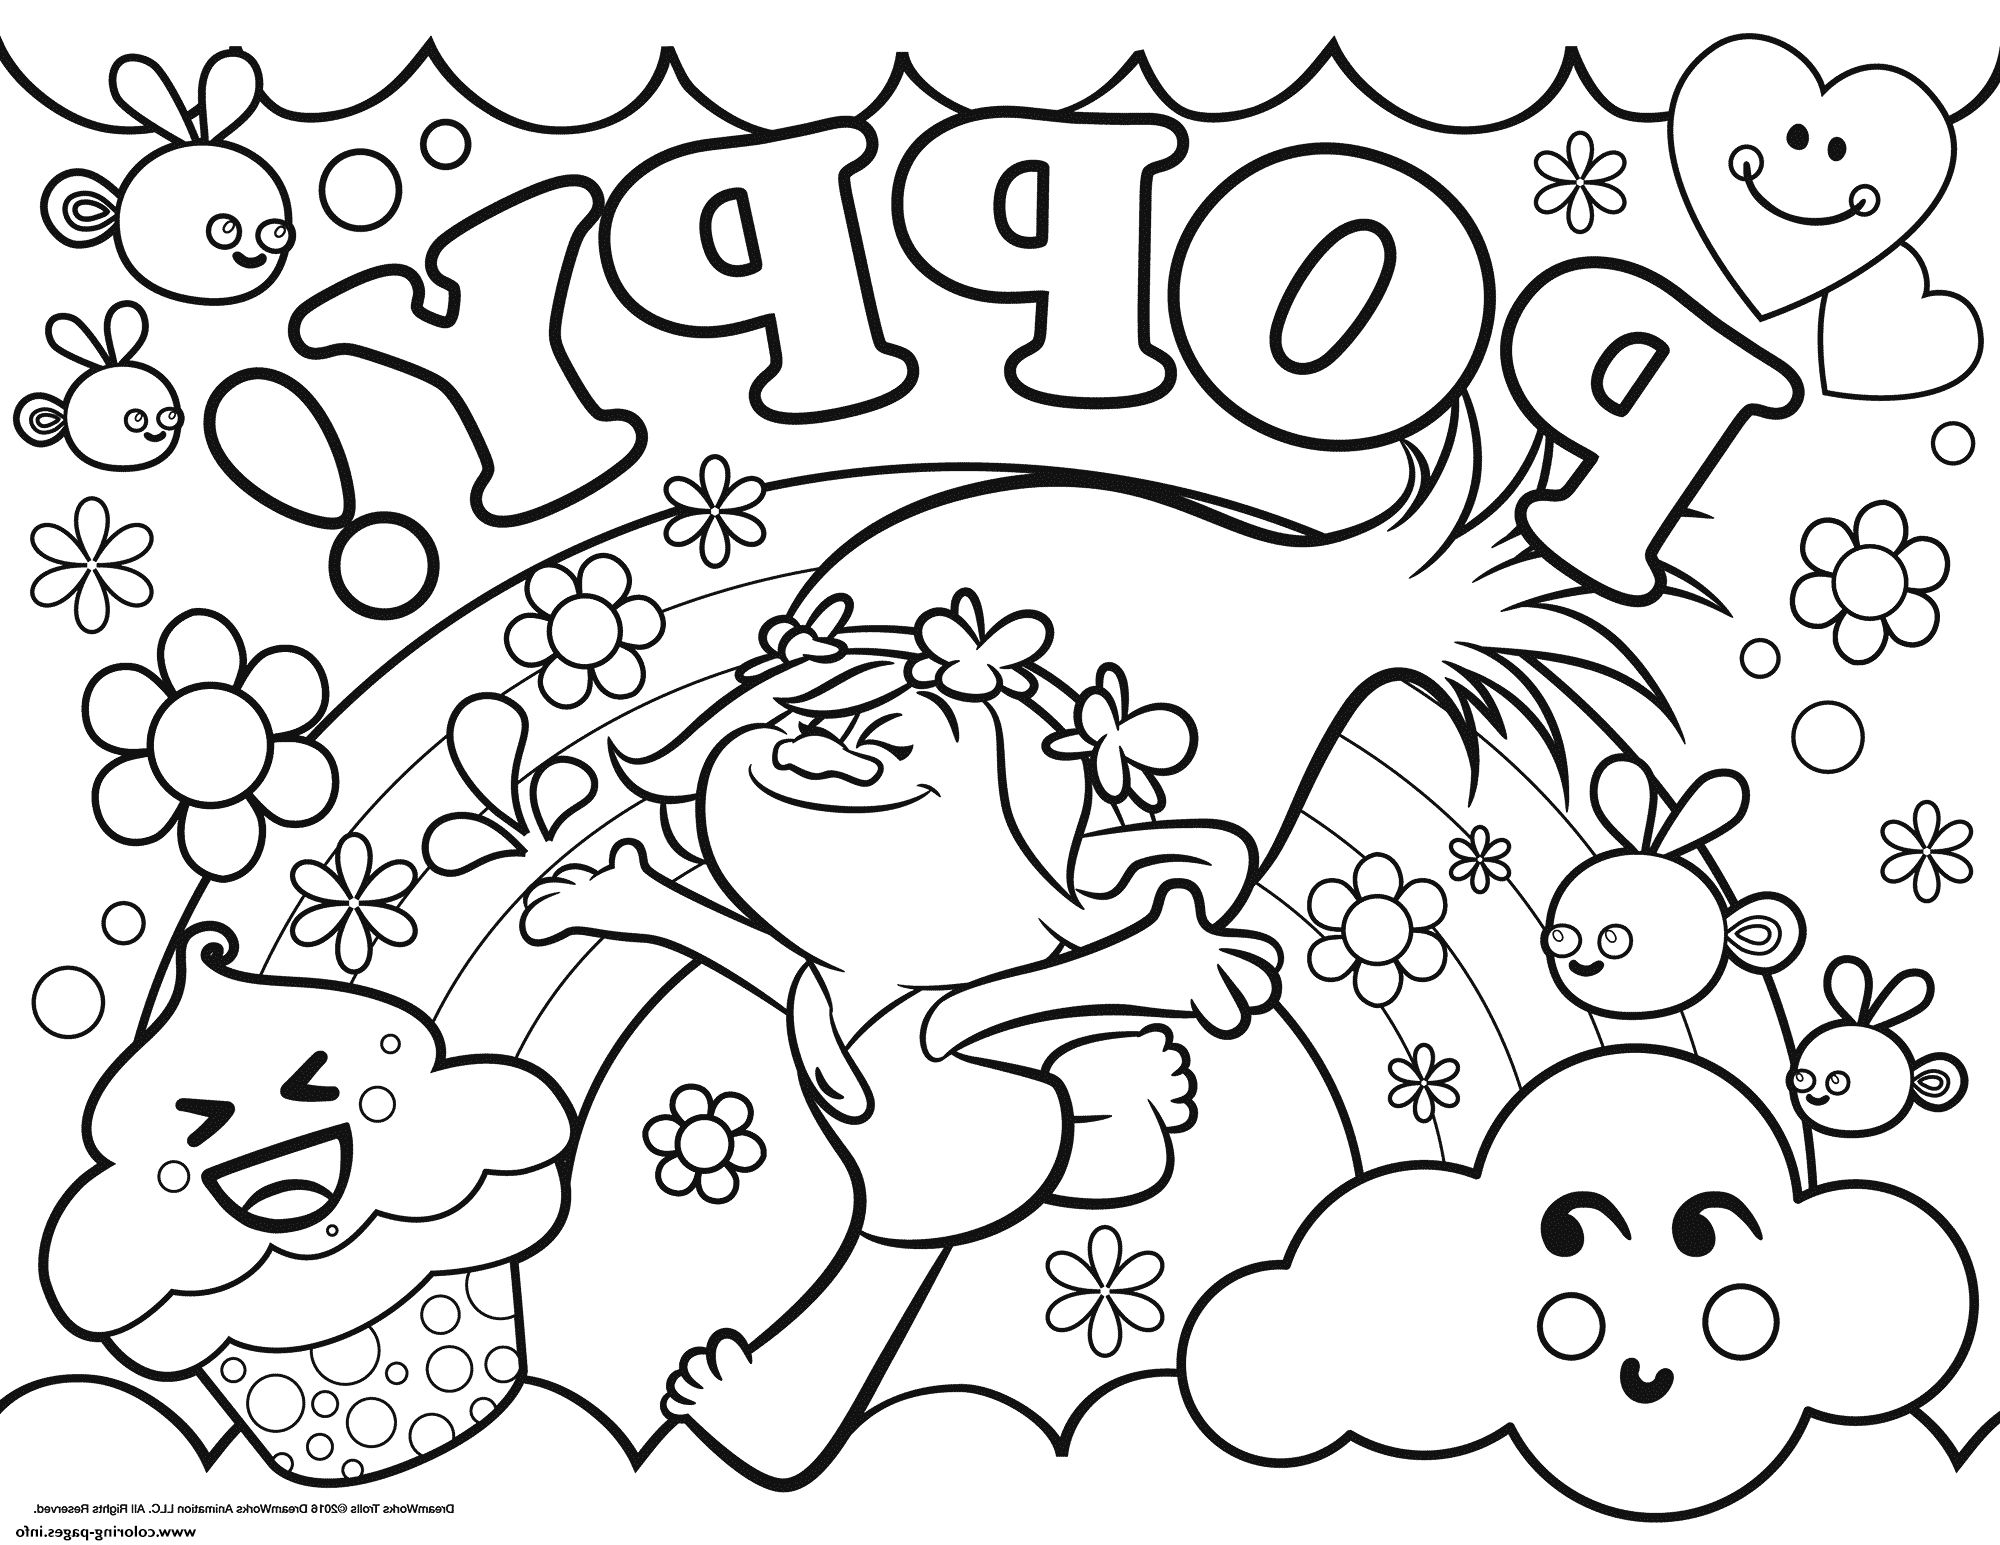 Trolls Coloring Pages Poppy trolls